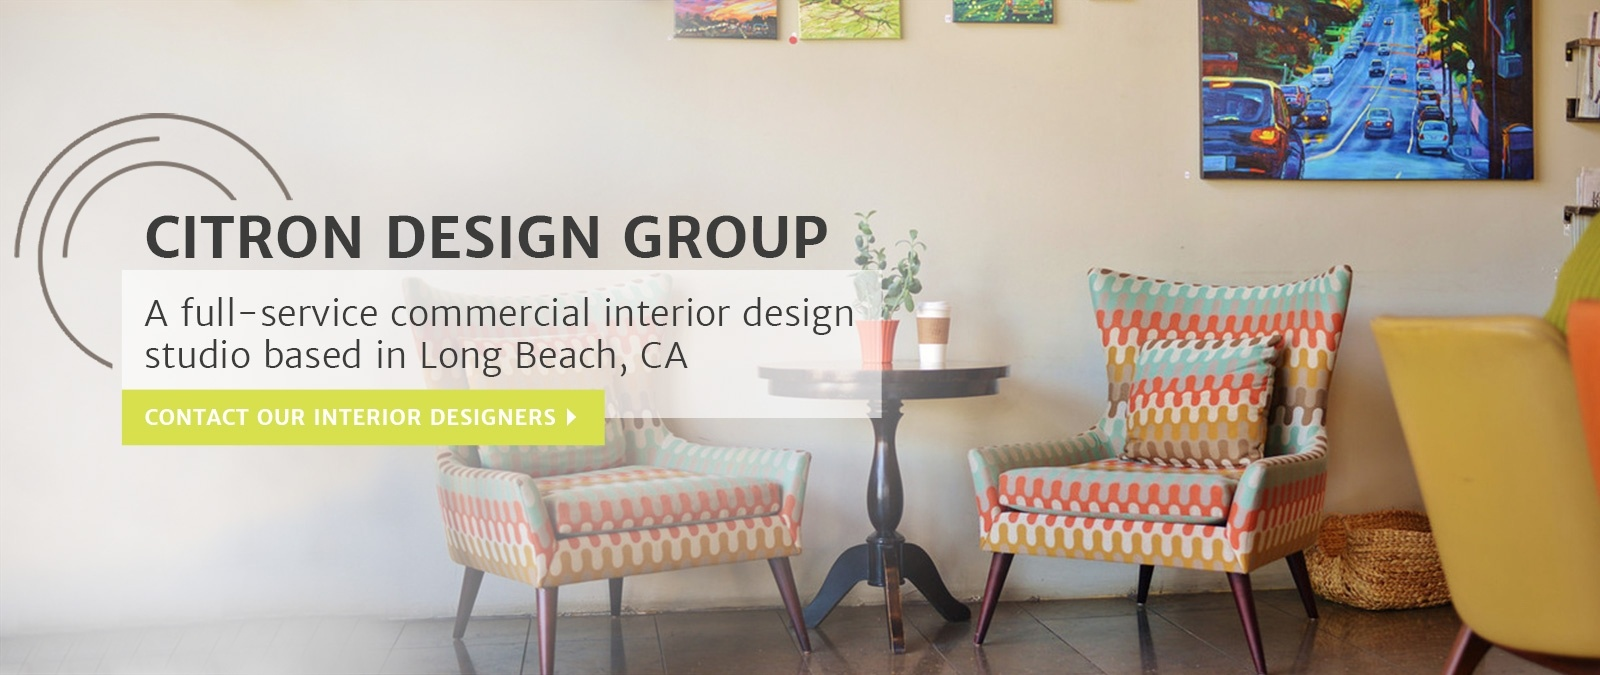 Commercial Interior Design Firm Long Beach